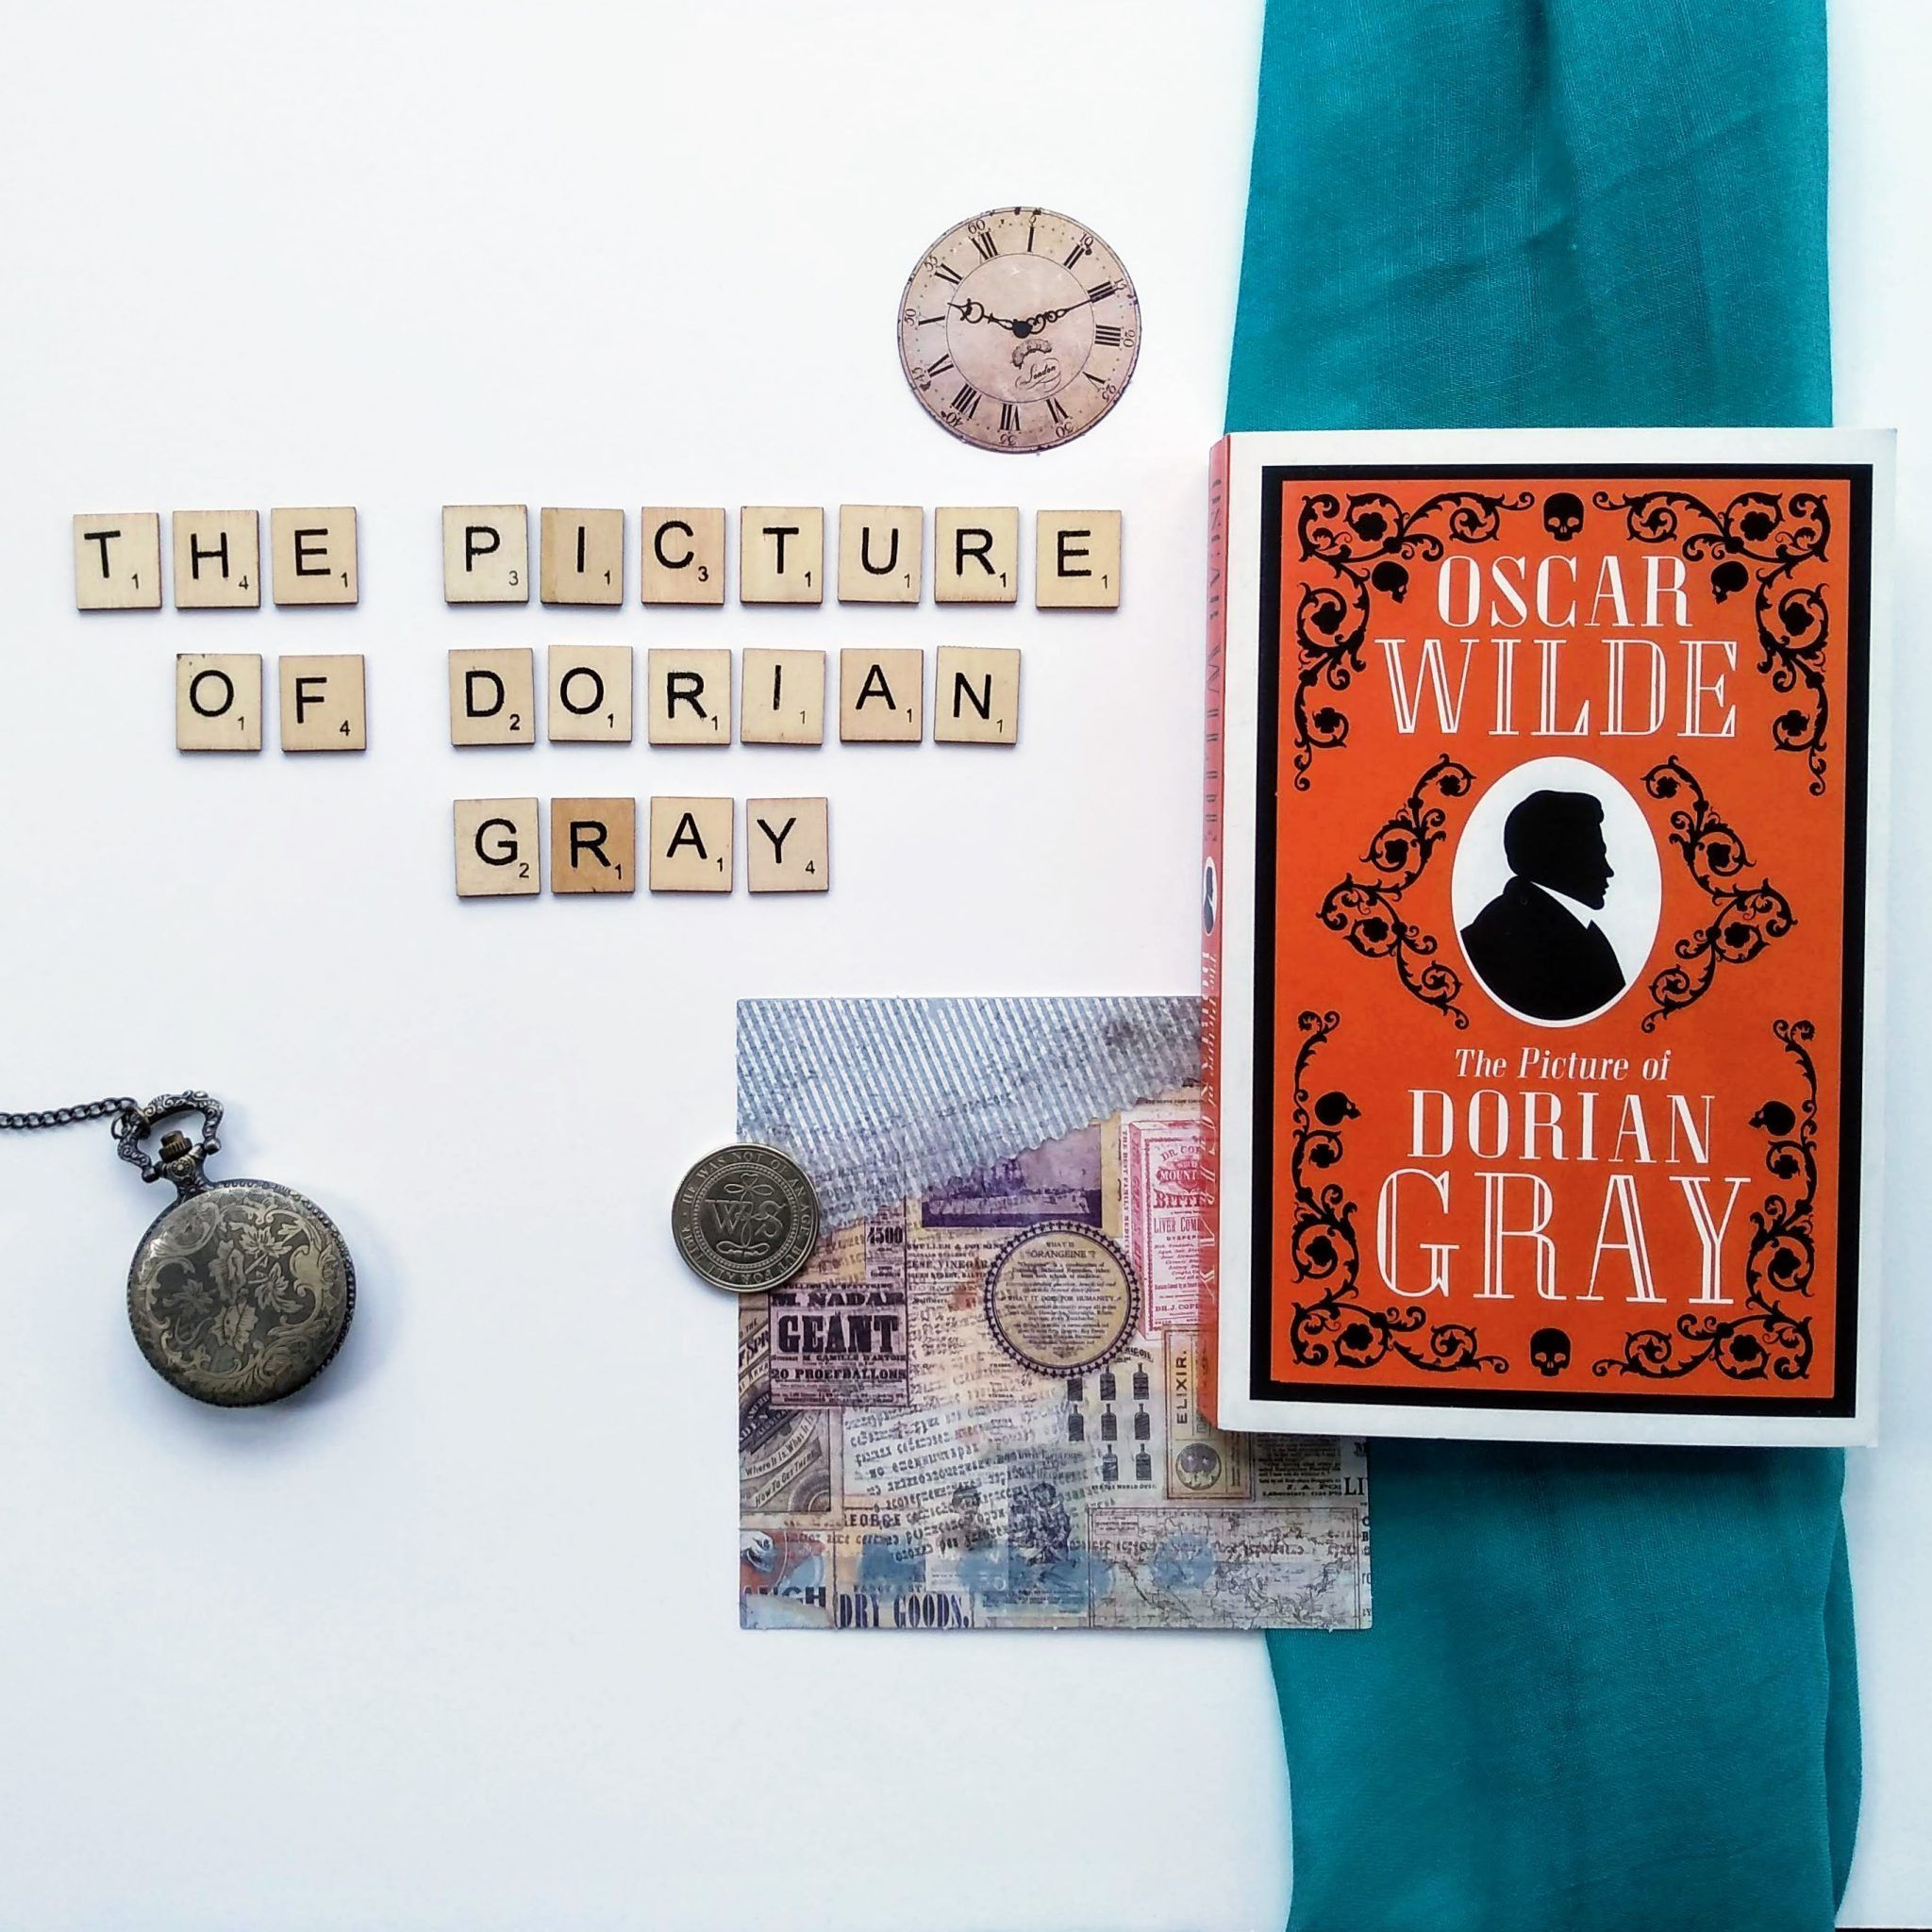 Oscar Wilde S The Picture Of Dorian Gray Tells The Story Of Dorian